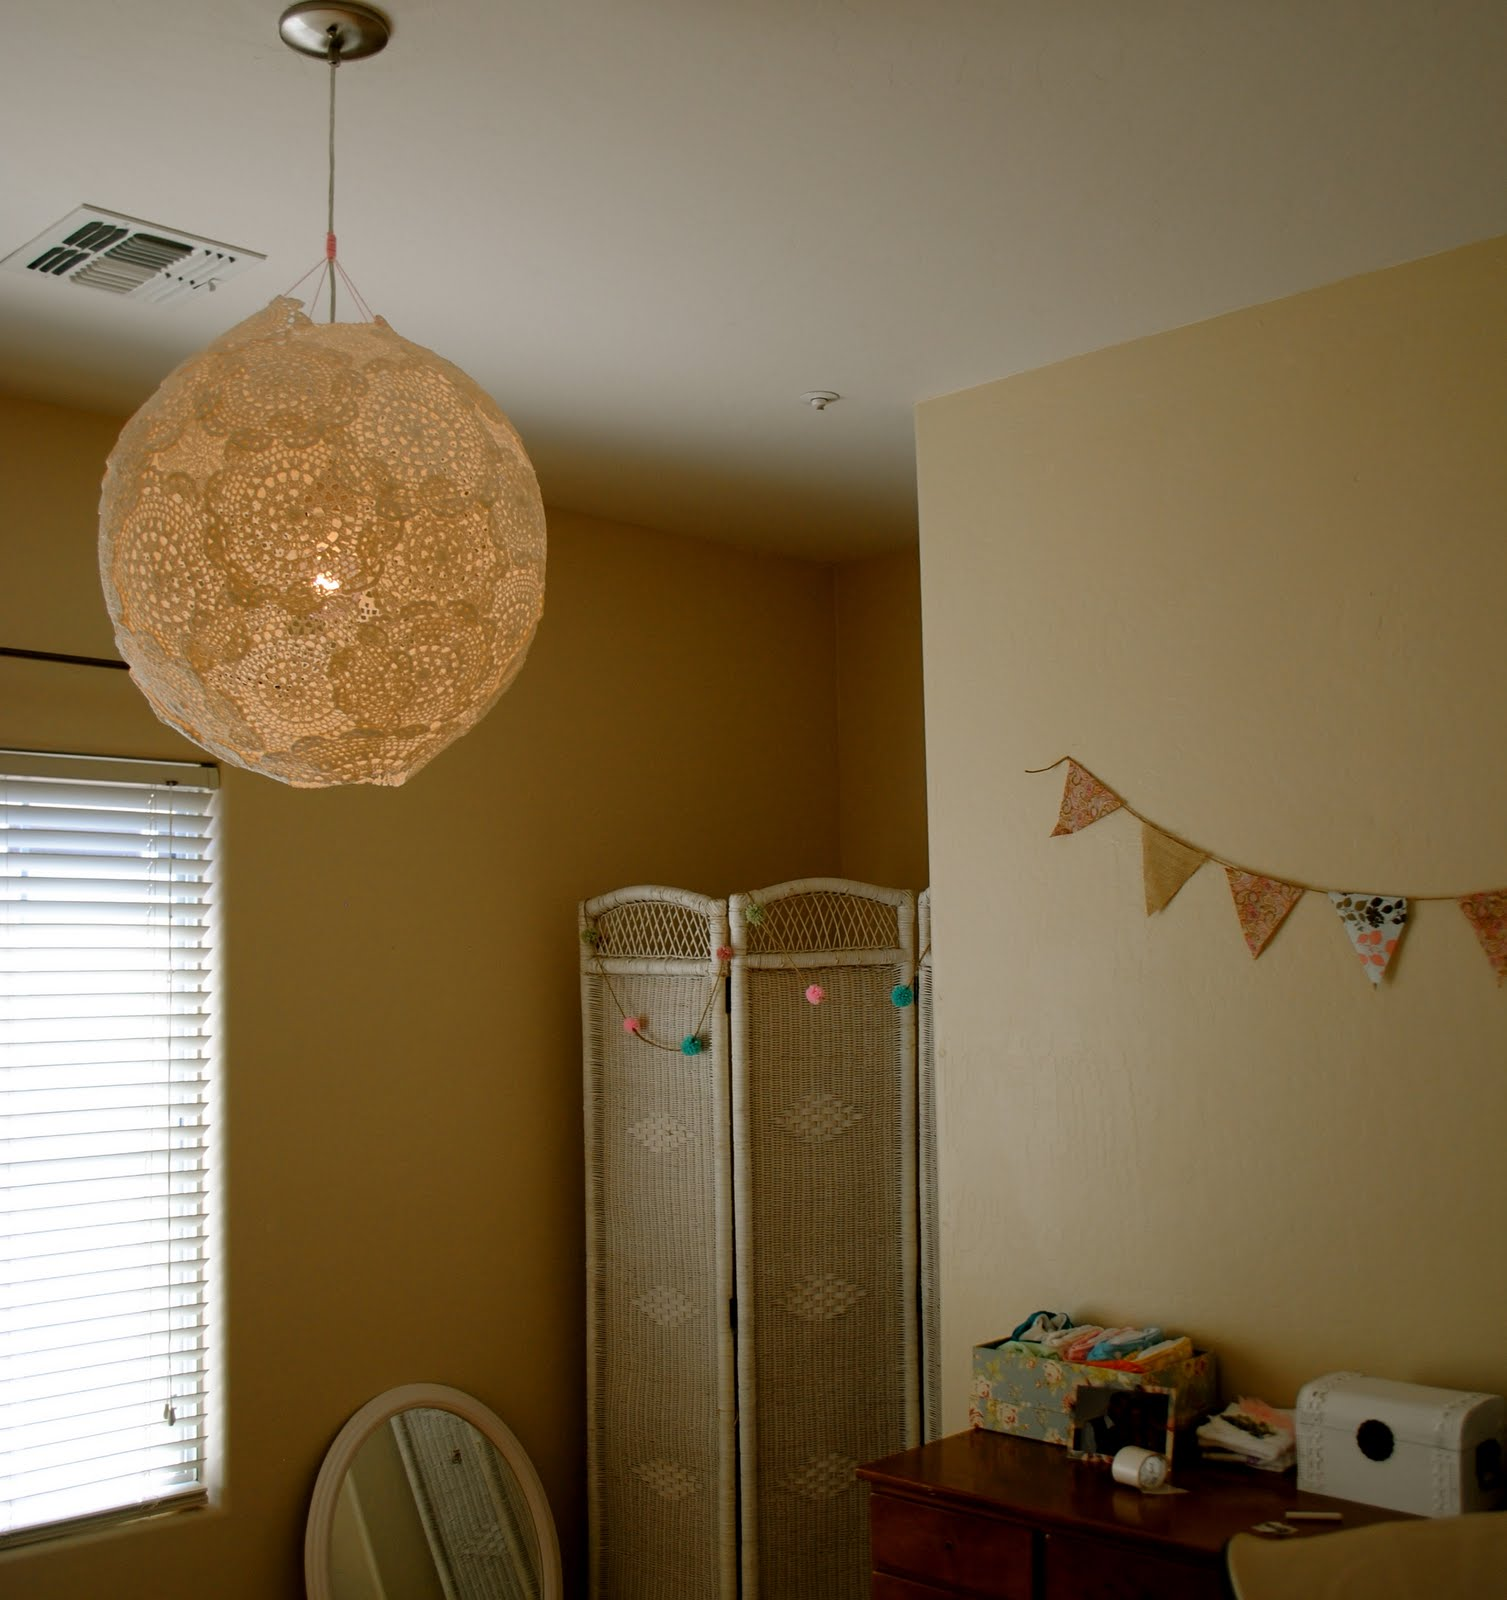 The johnstons diy doily lamp your own beautiful doily lamp arubaitofo Images